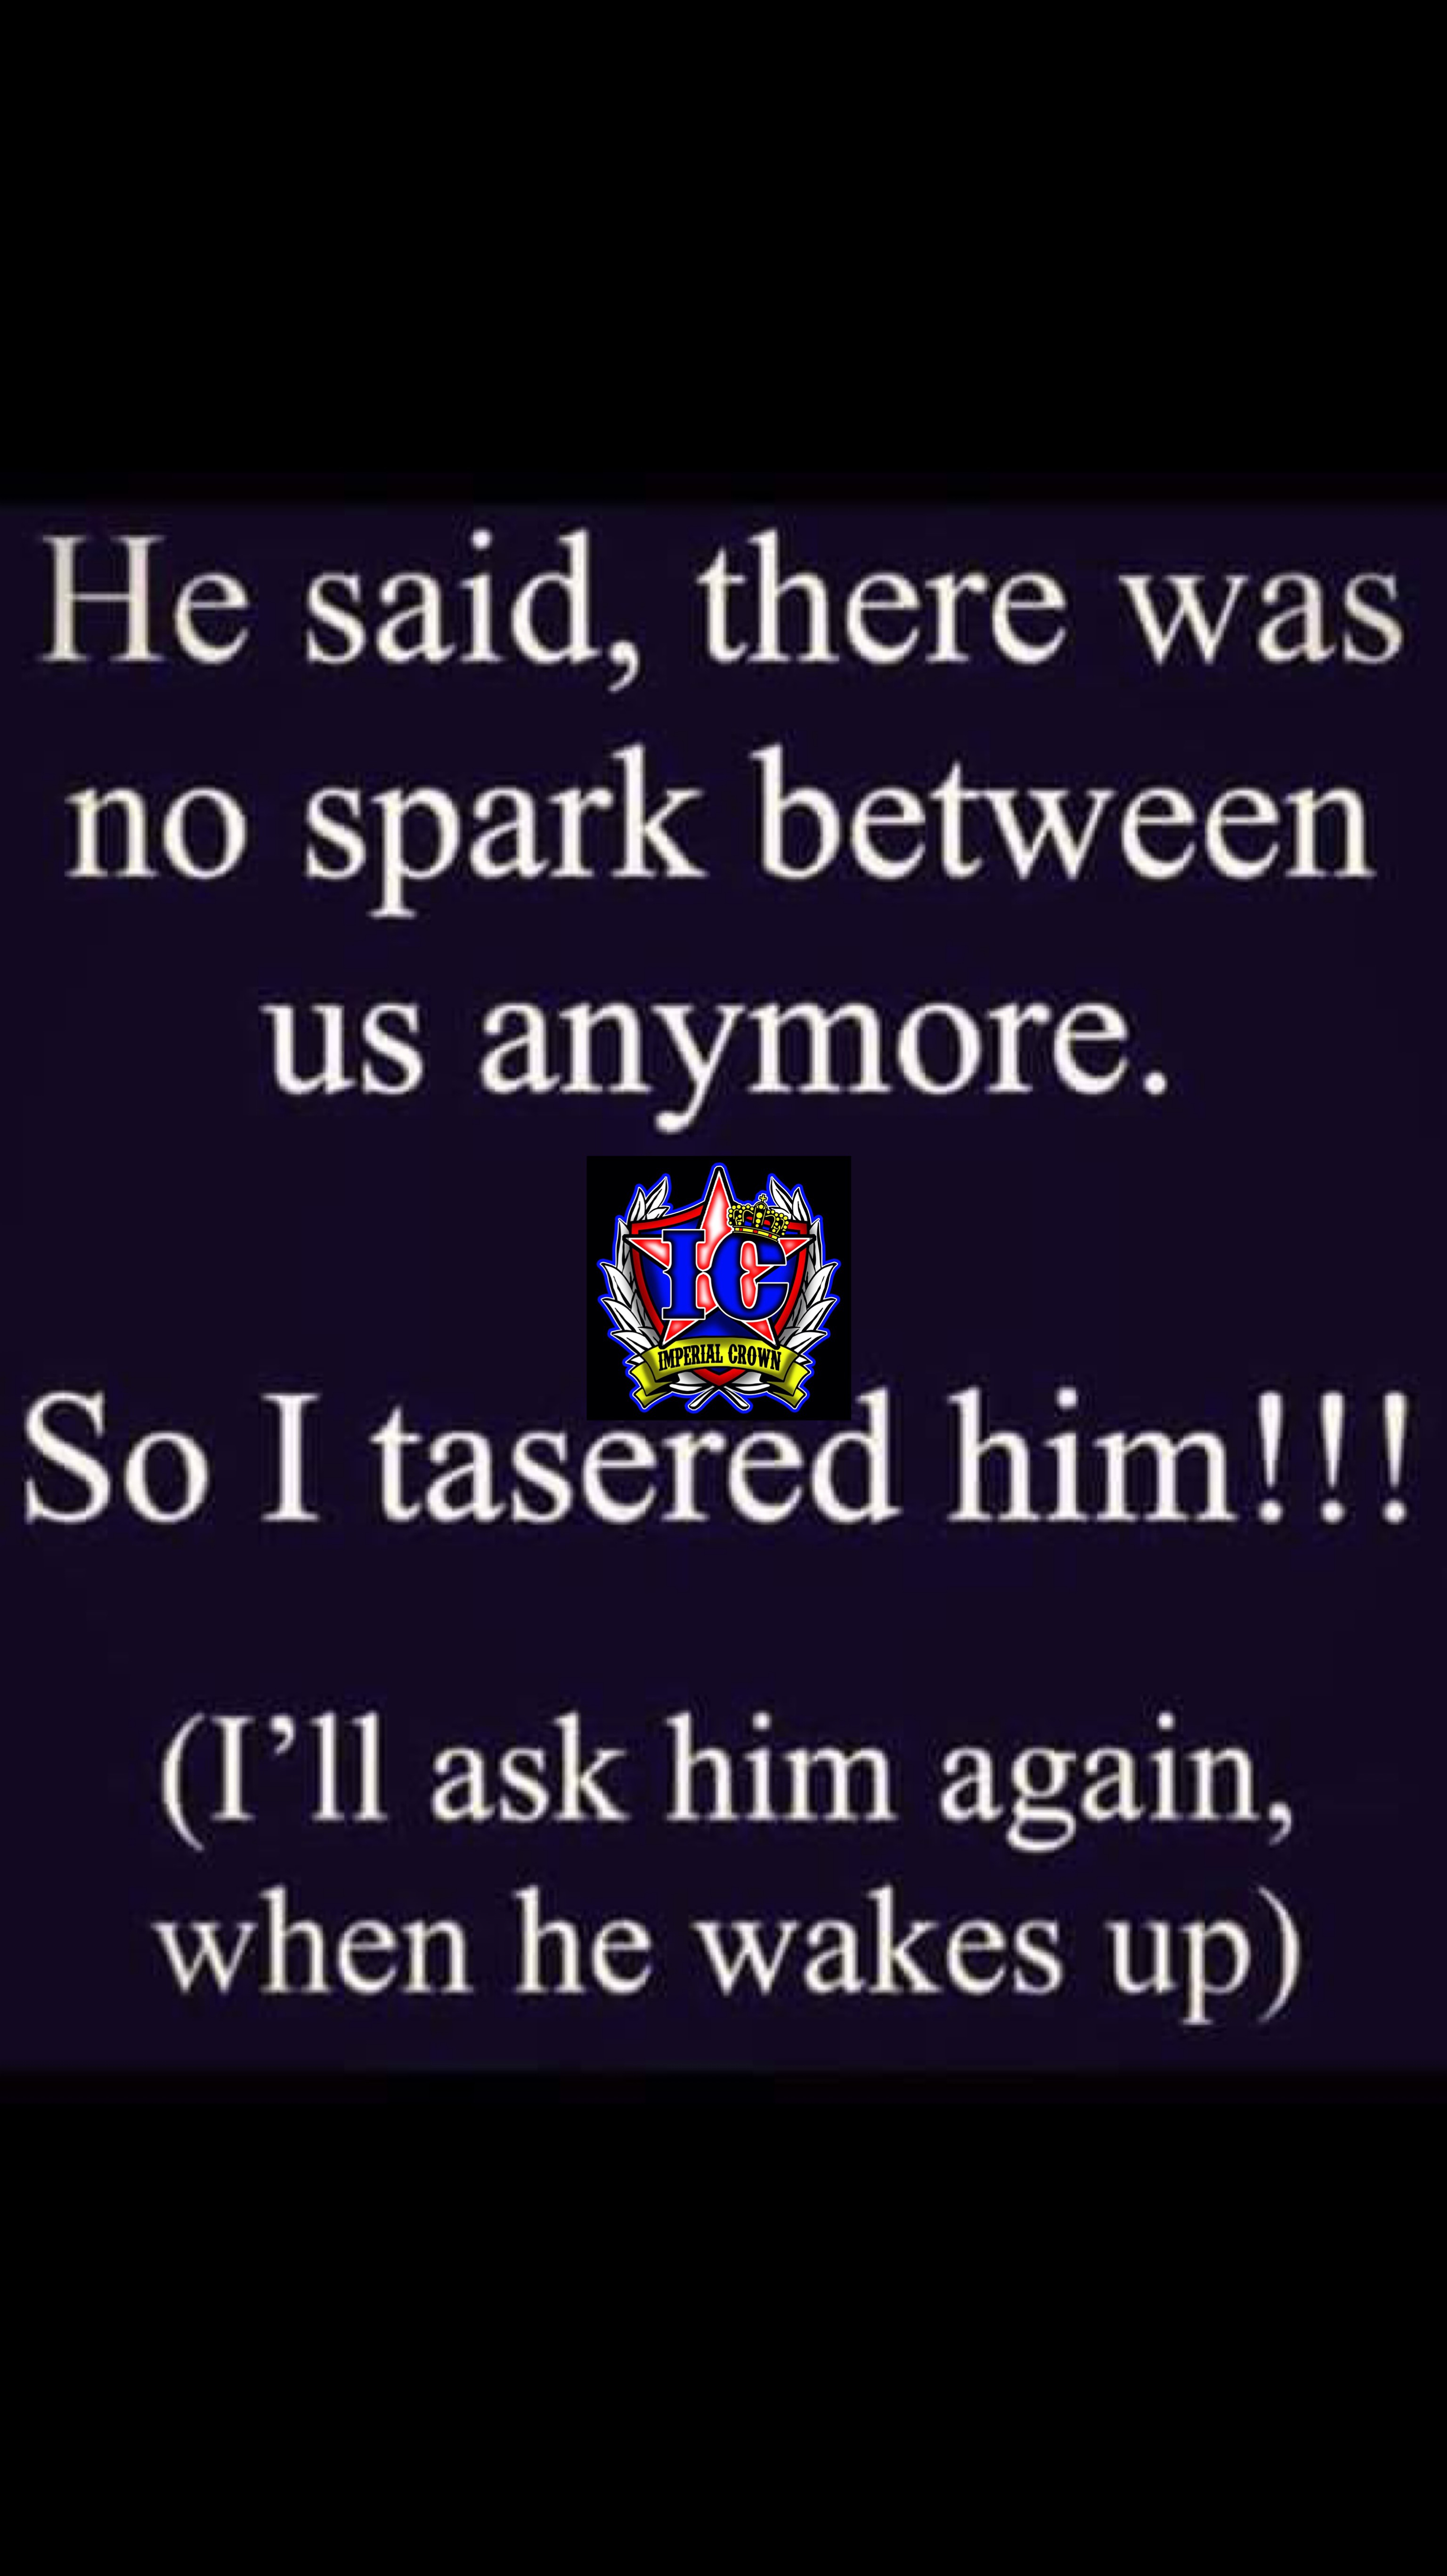 He said, there was no spark between us anymore